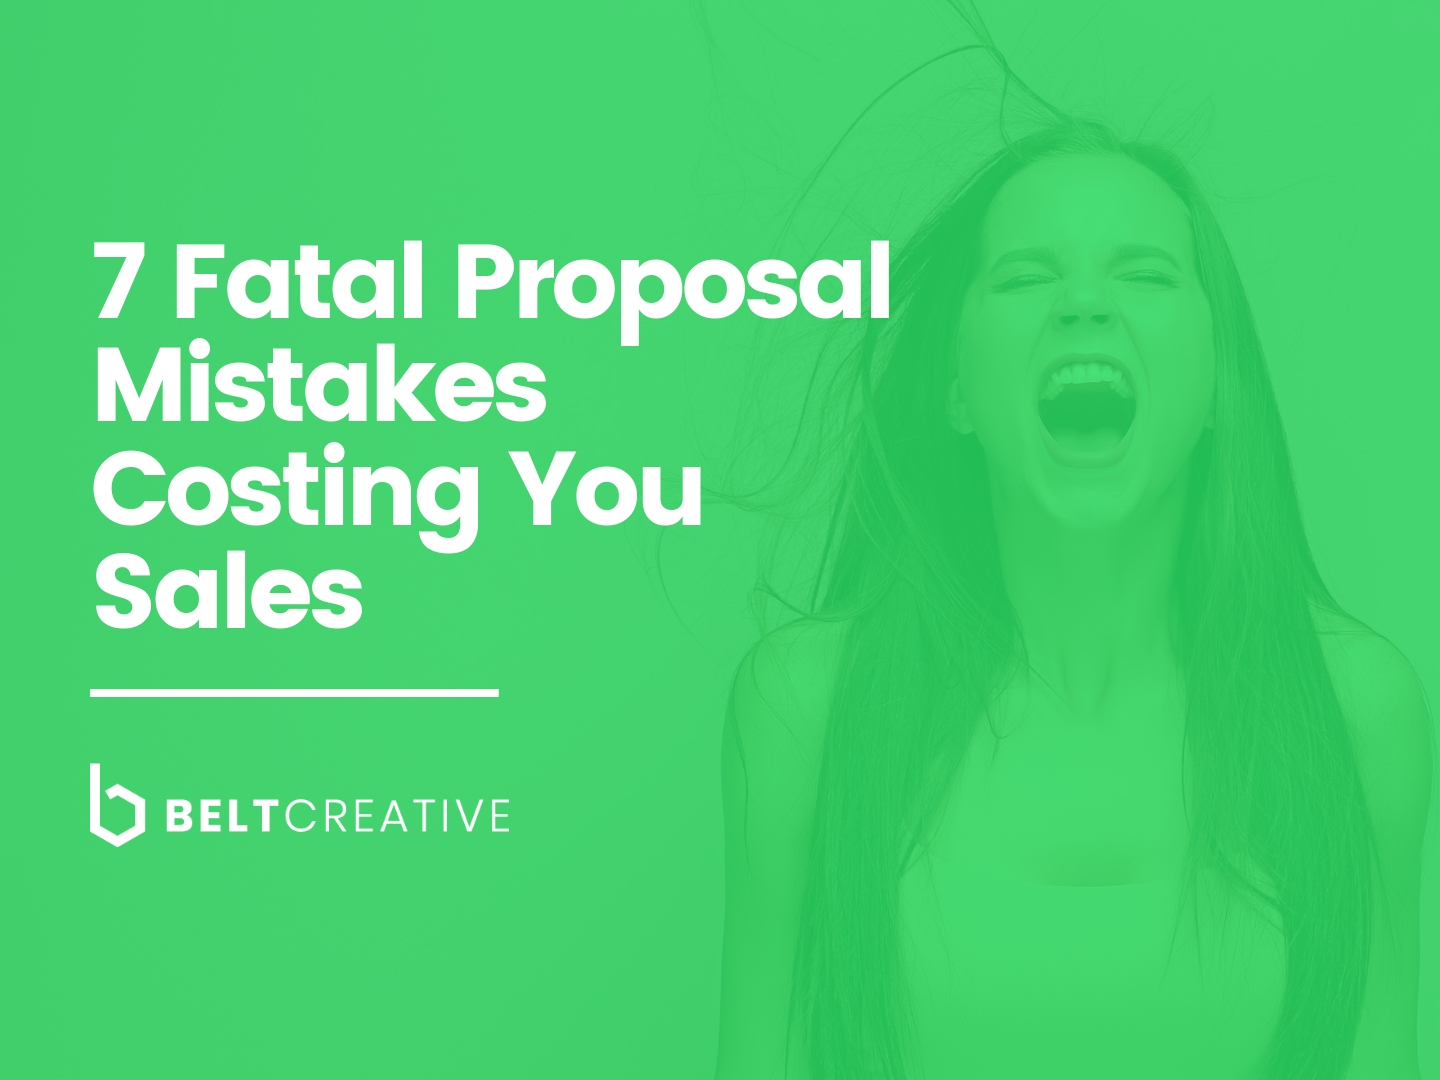 Is your proposal making one of these 7 Fatal Proposal Mistakes? - Most proposals fail for the same reasons, and that's why we made this free ebook to teach you how to design trust and credibility into your proposal.